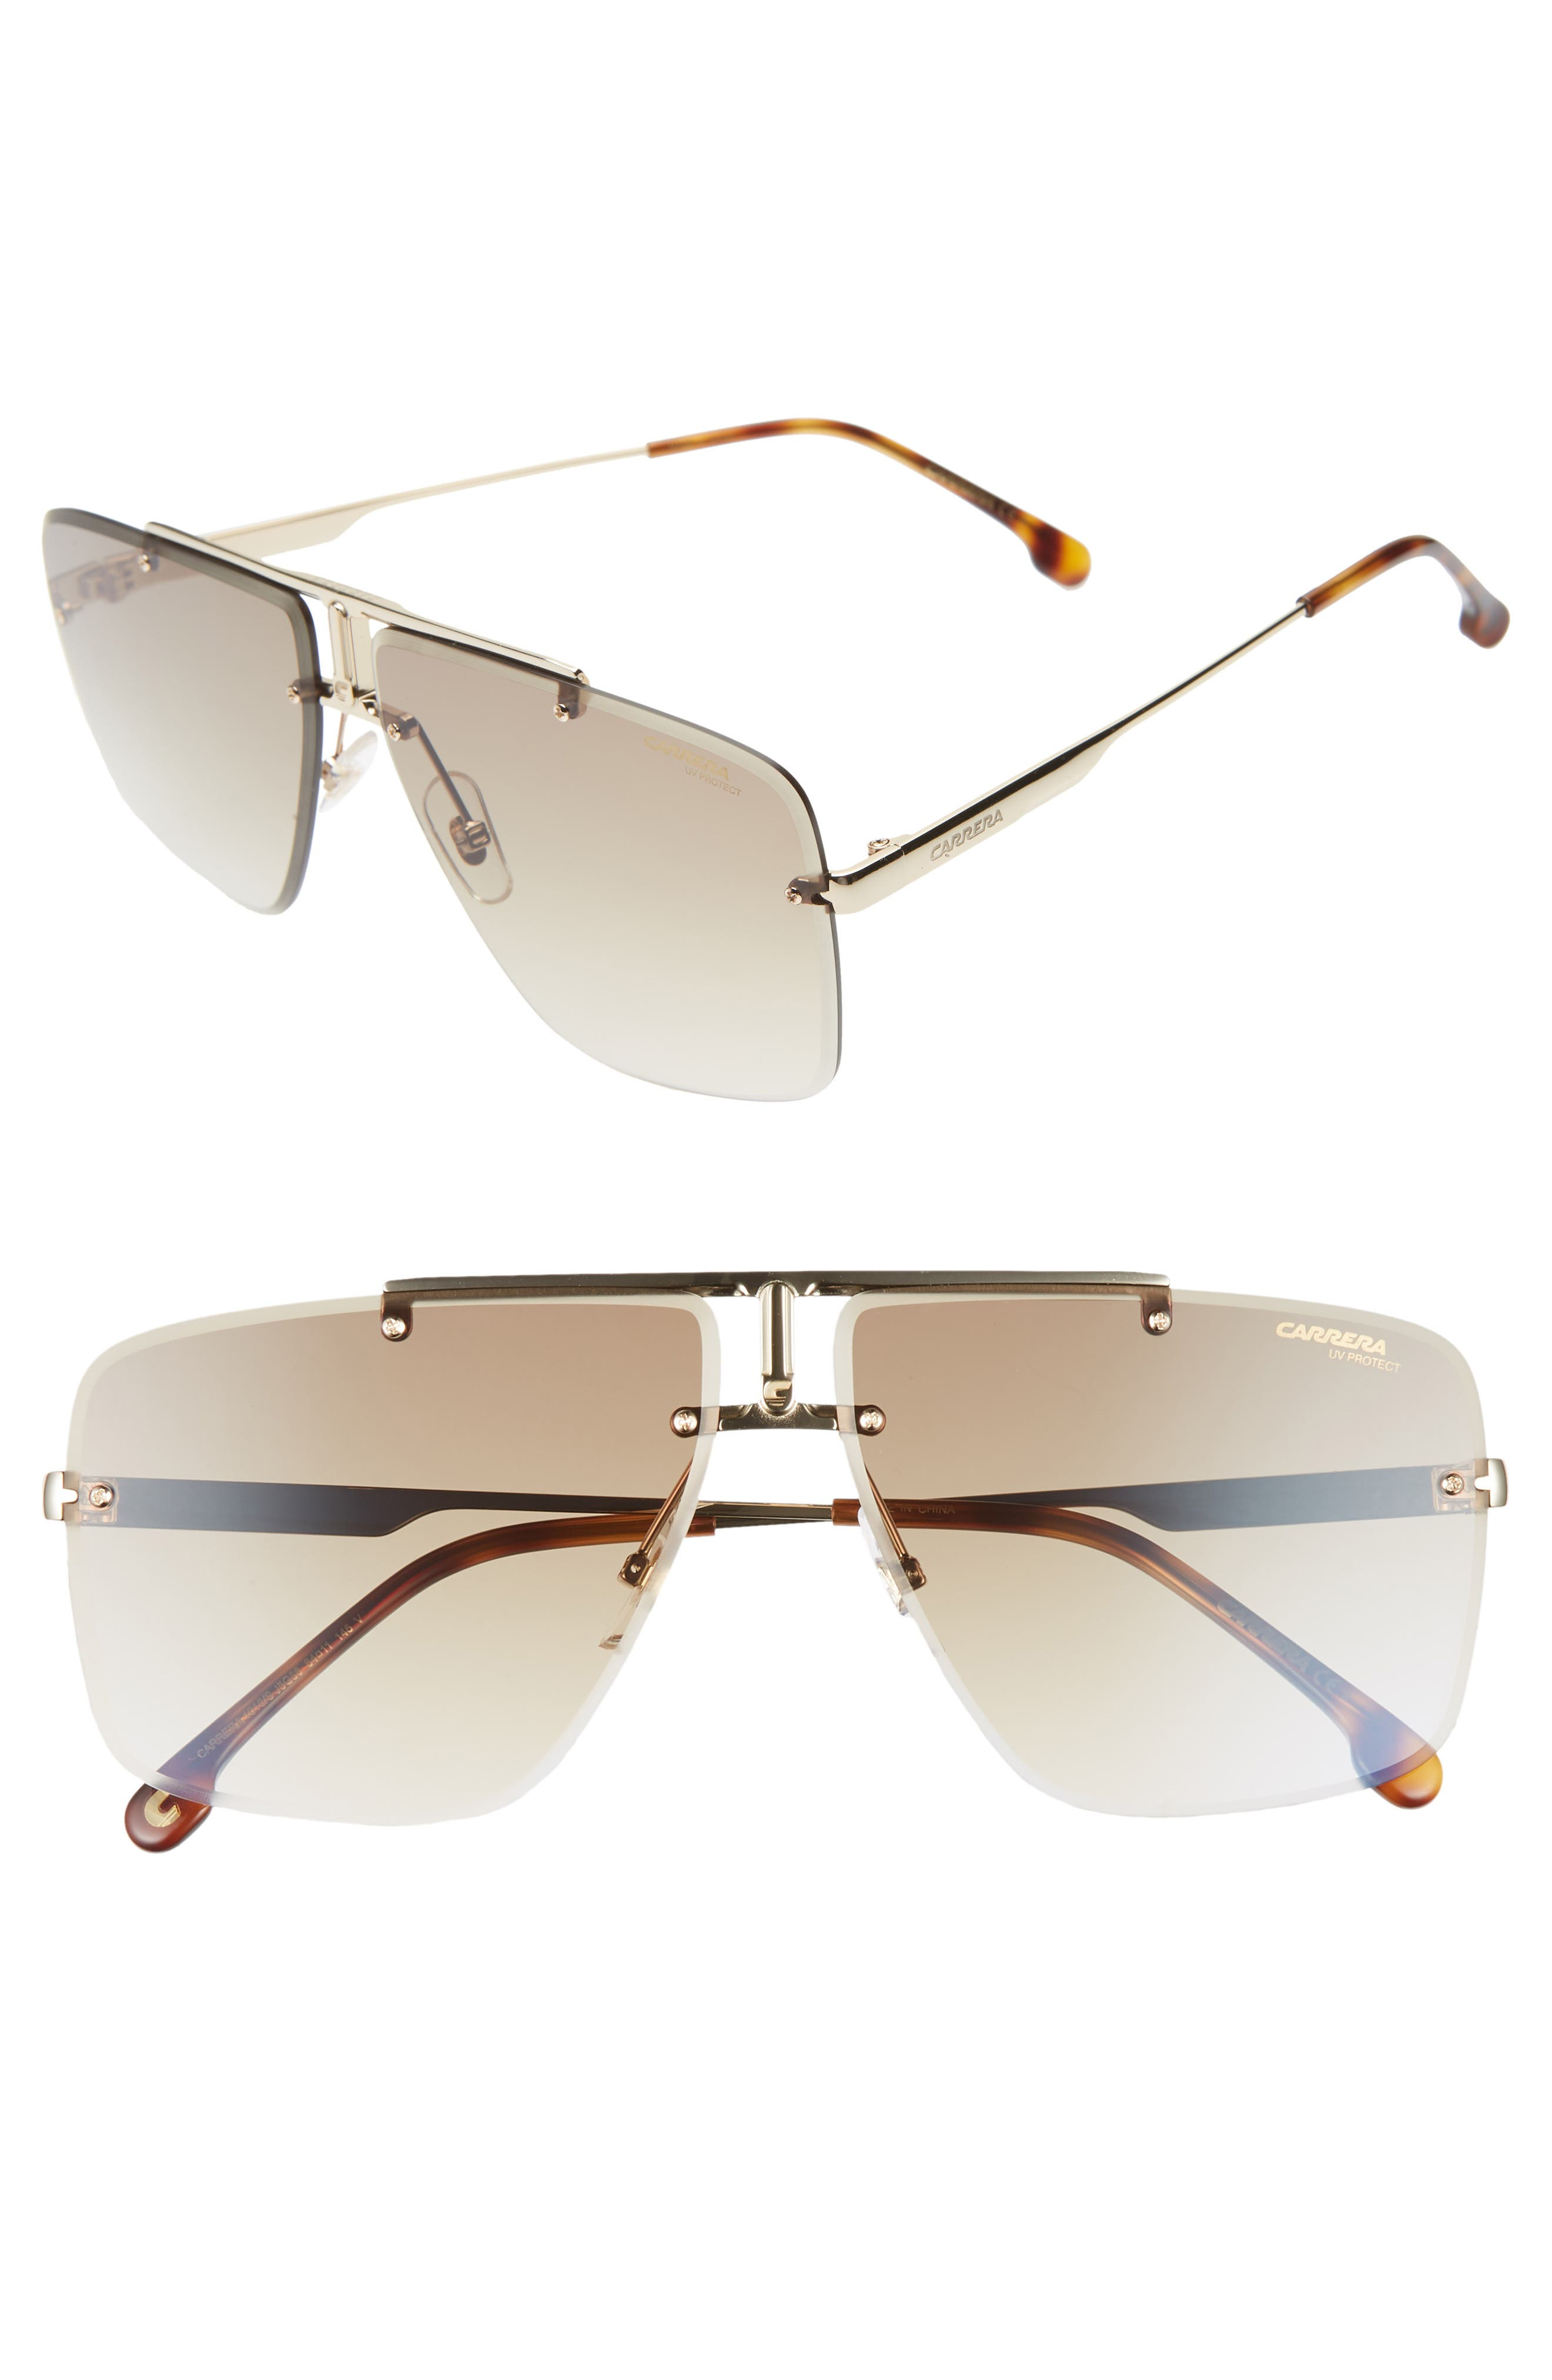 Carrera Eyewear Navigator Sunglasses - Gold